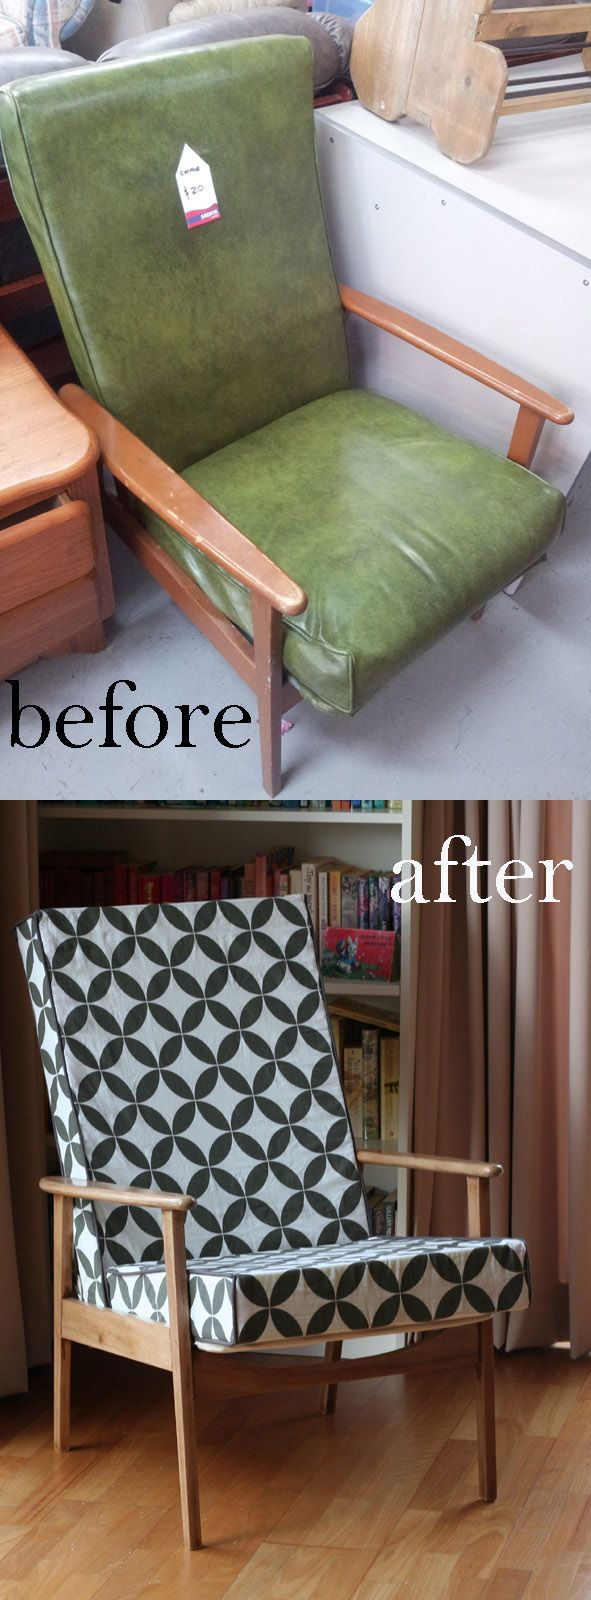 Before and After - Retro Armchair Makeover. Mid century.